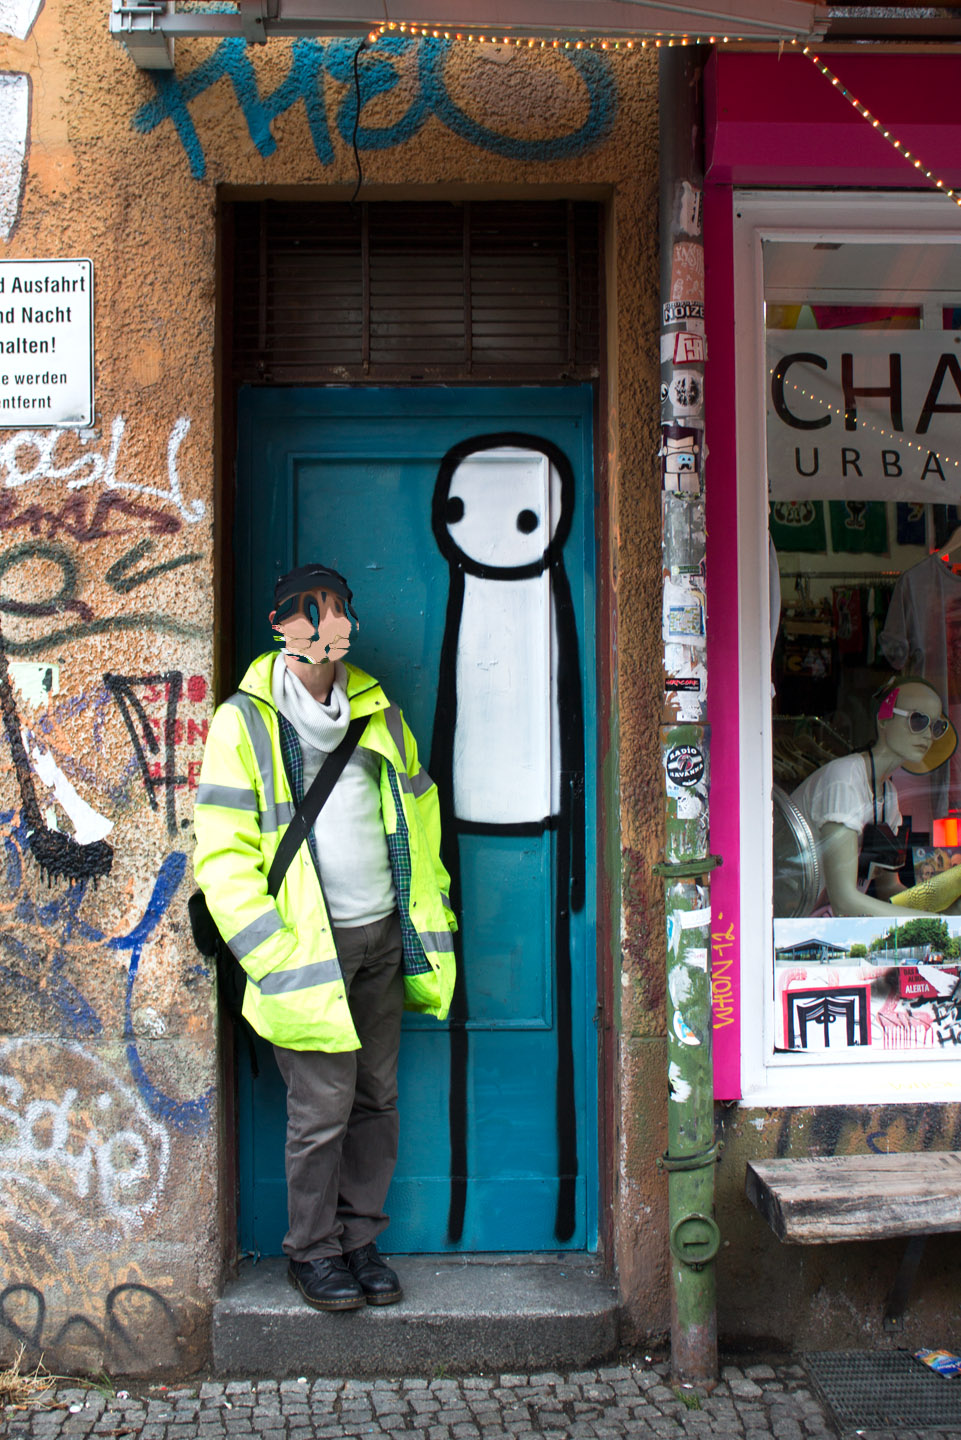 London based Street Artist Stik hits Berlins Street Art Scene